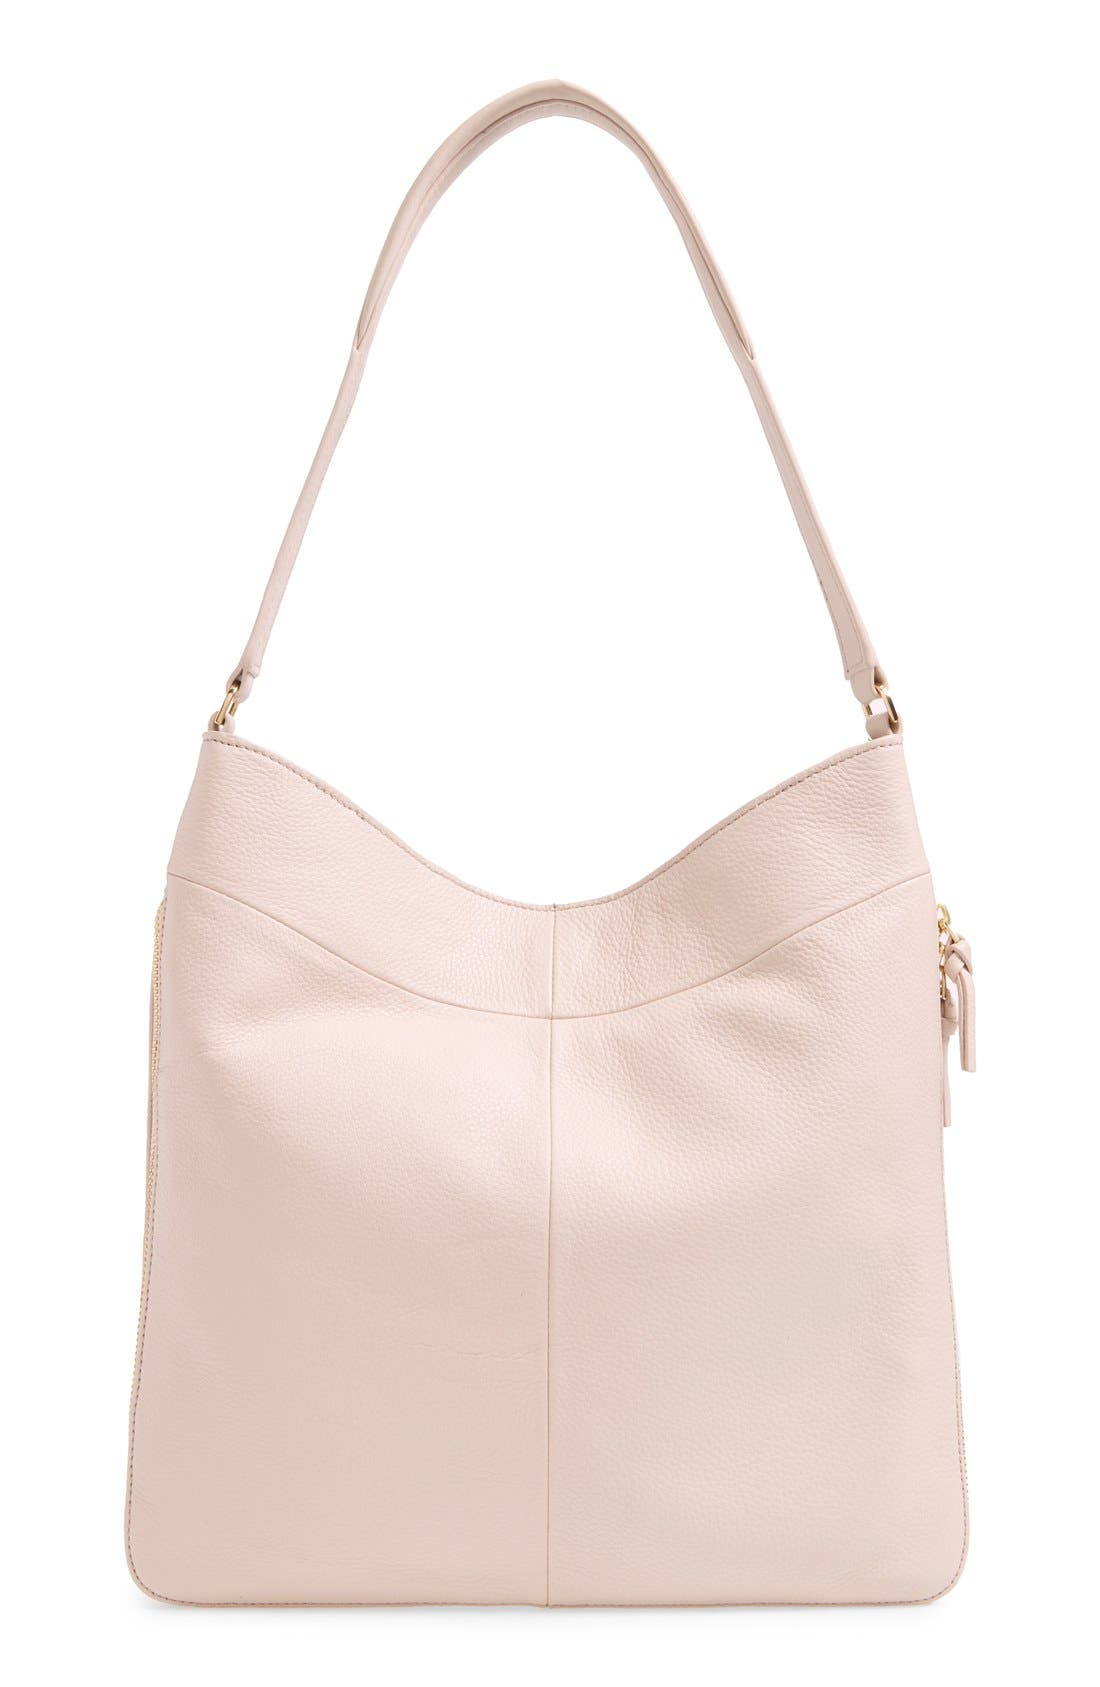 Alternate Image 3  - Tory Burch Ivy Leather Hobo